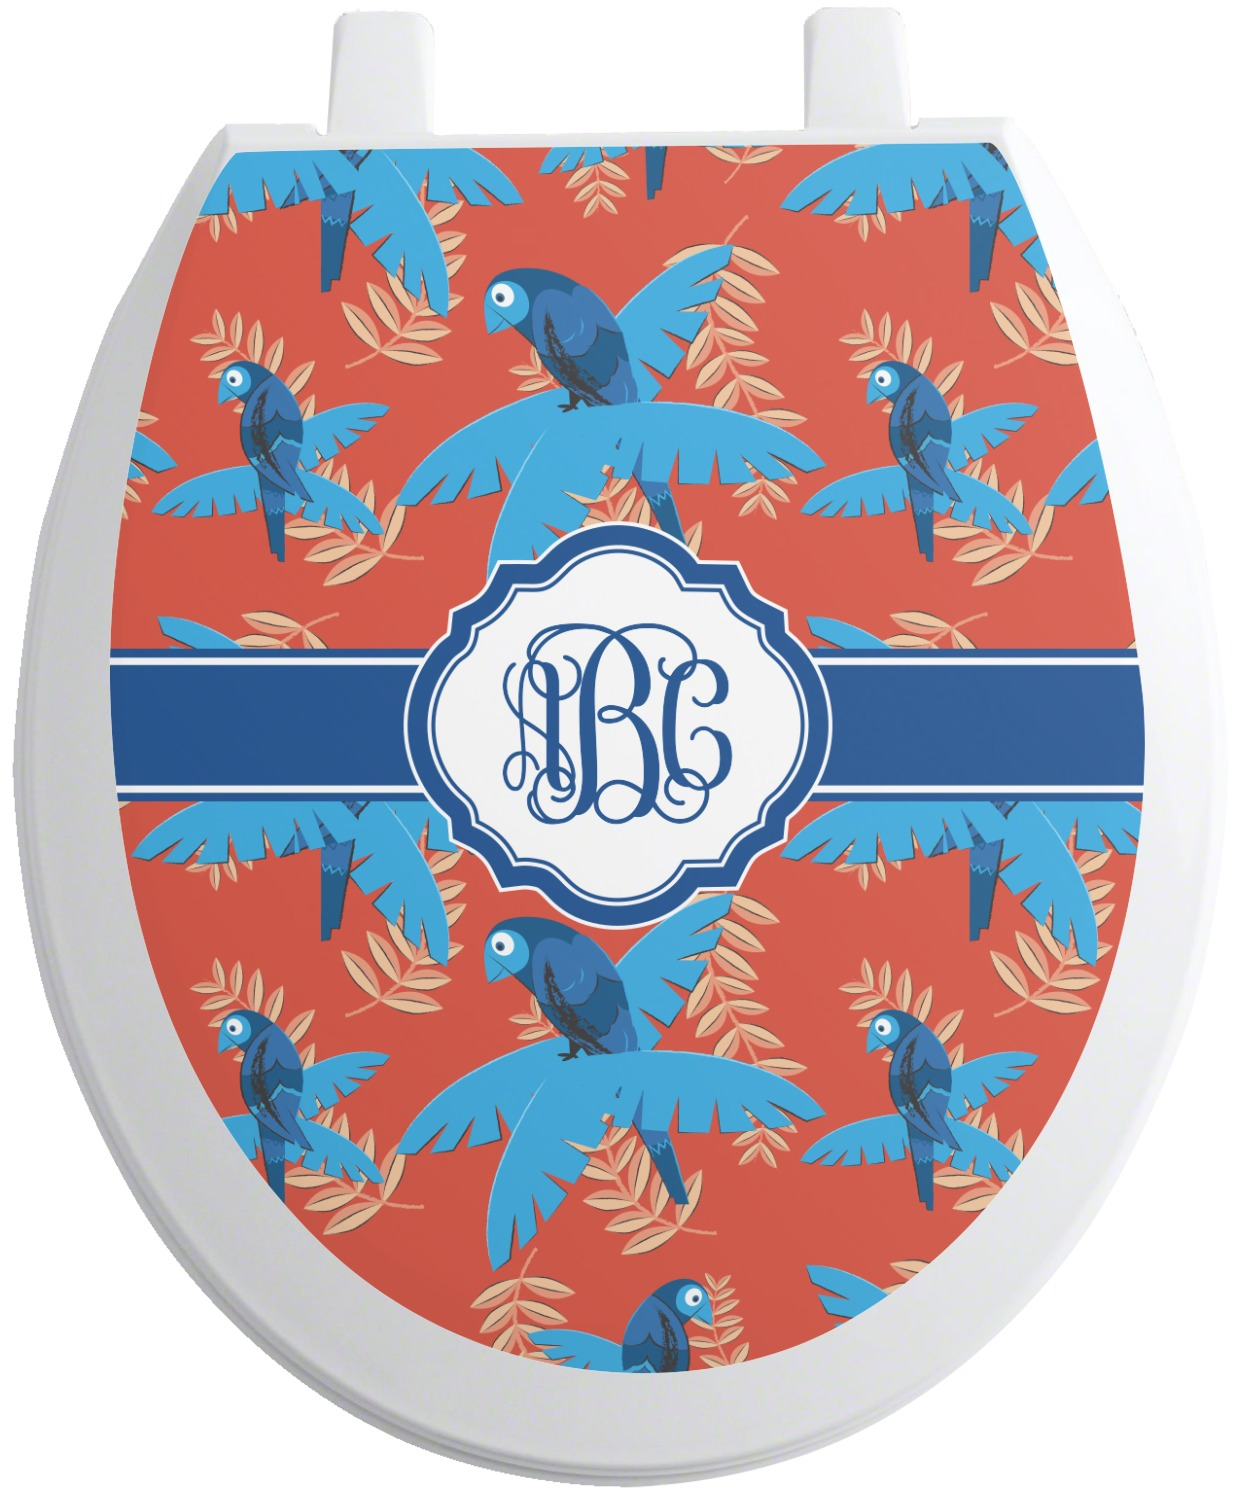 blue parrot toilet seat decal round personalized. Black Bedroom Furniture Sets. Home Design Ideas